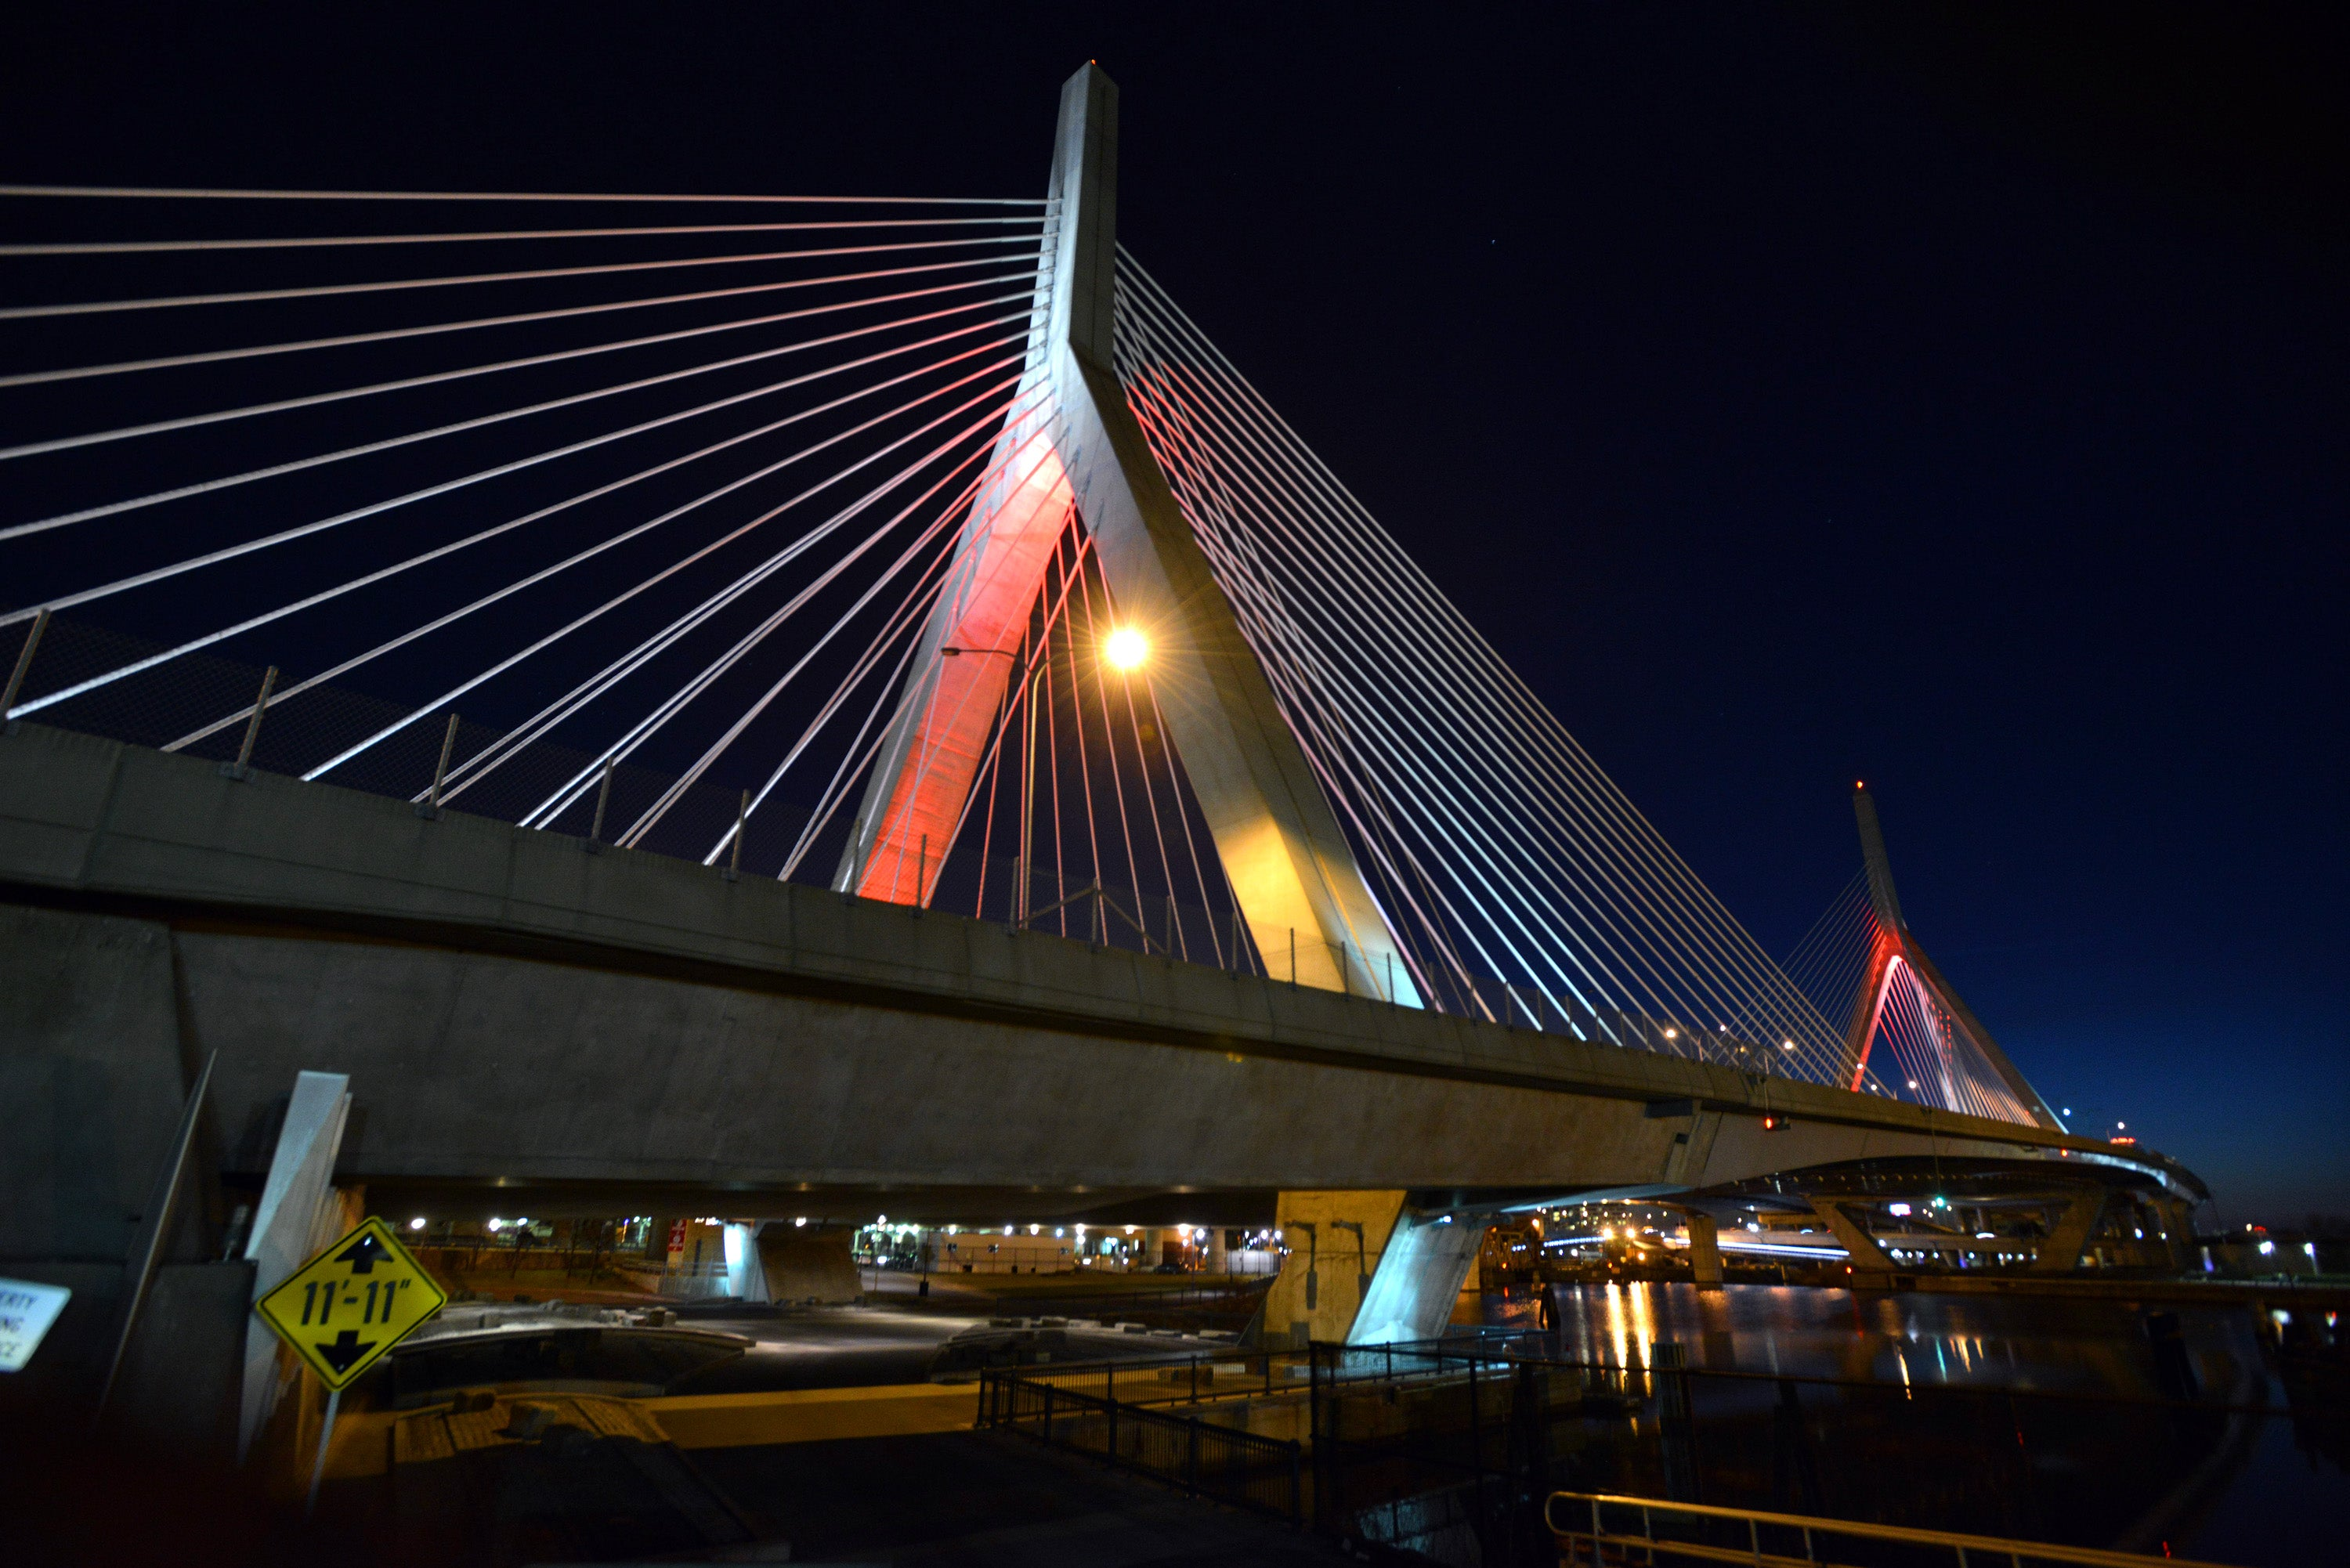 IMAGE DISTRIBUTED FOR BIOGEN - The Leonard P. Zakim Bunker Hill Bridge is illuminated red to raise awareness for the bleeding disorders community on World Hemophilia Day on Sunday, April 17, 2016 in Boston. (Josh Reynolds/AP Images for Biogen)